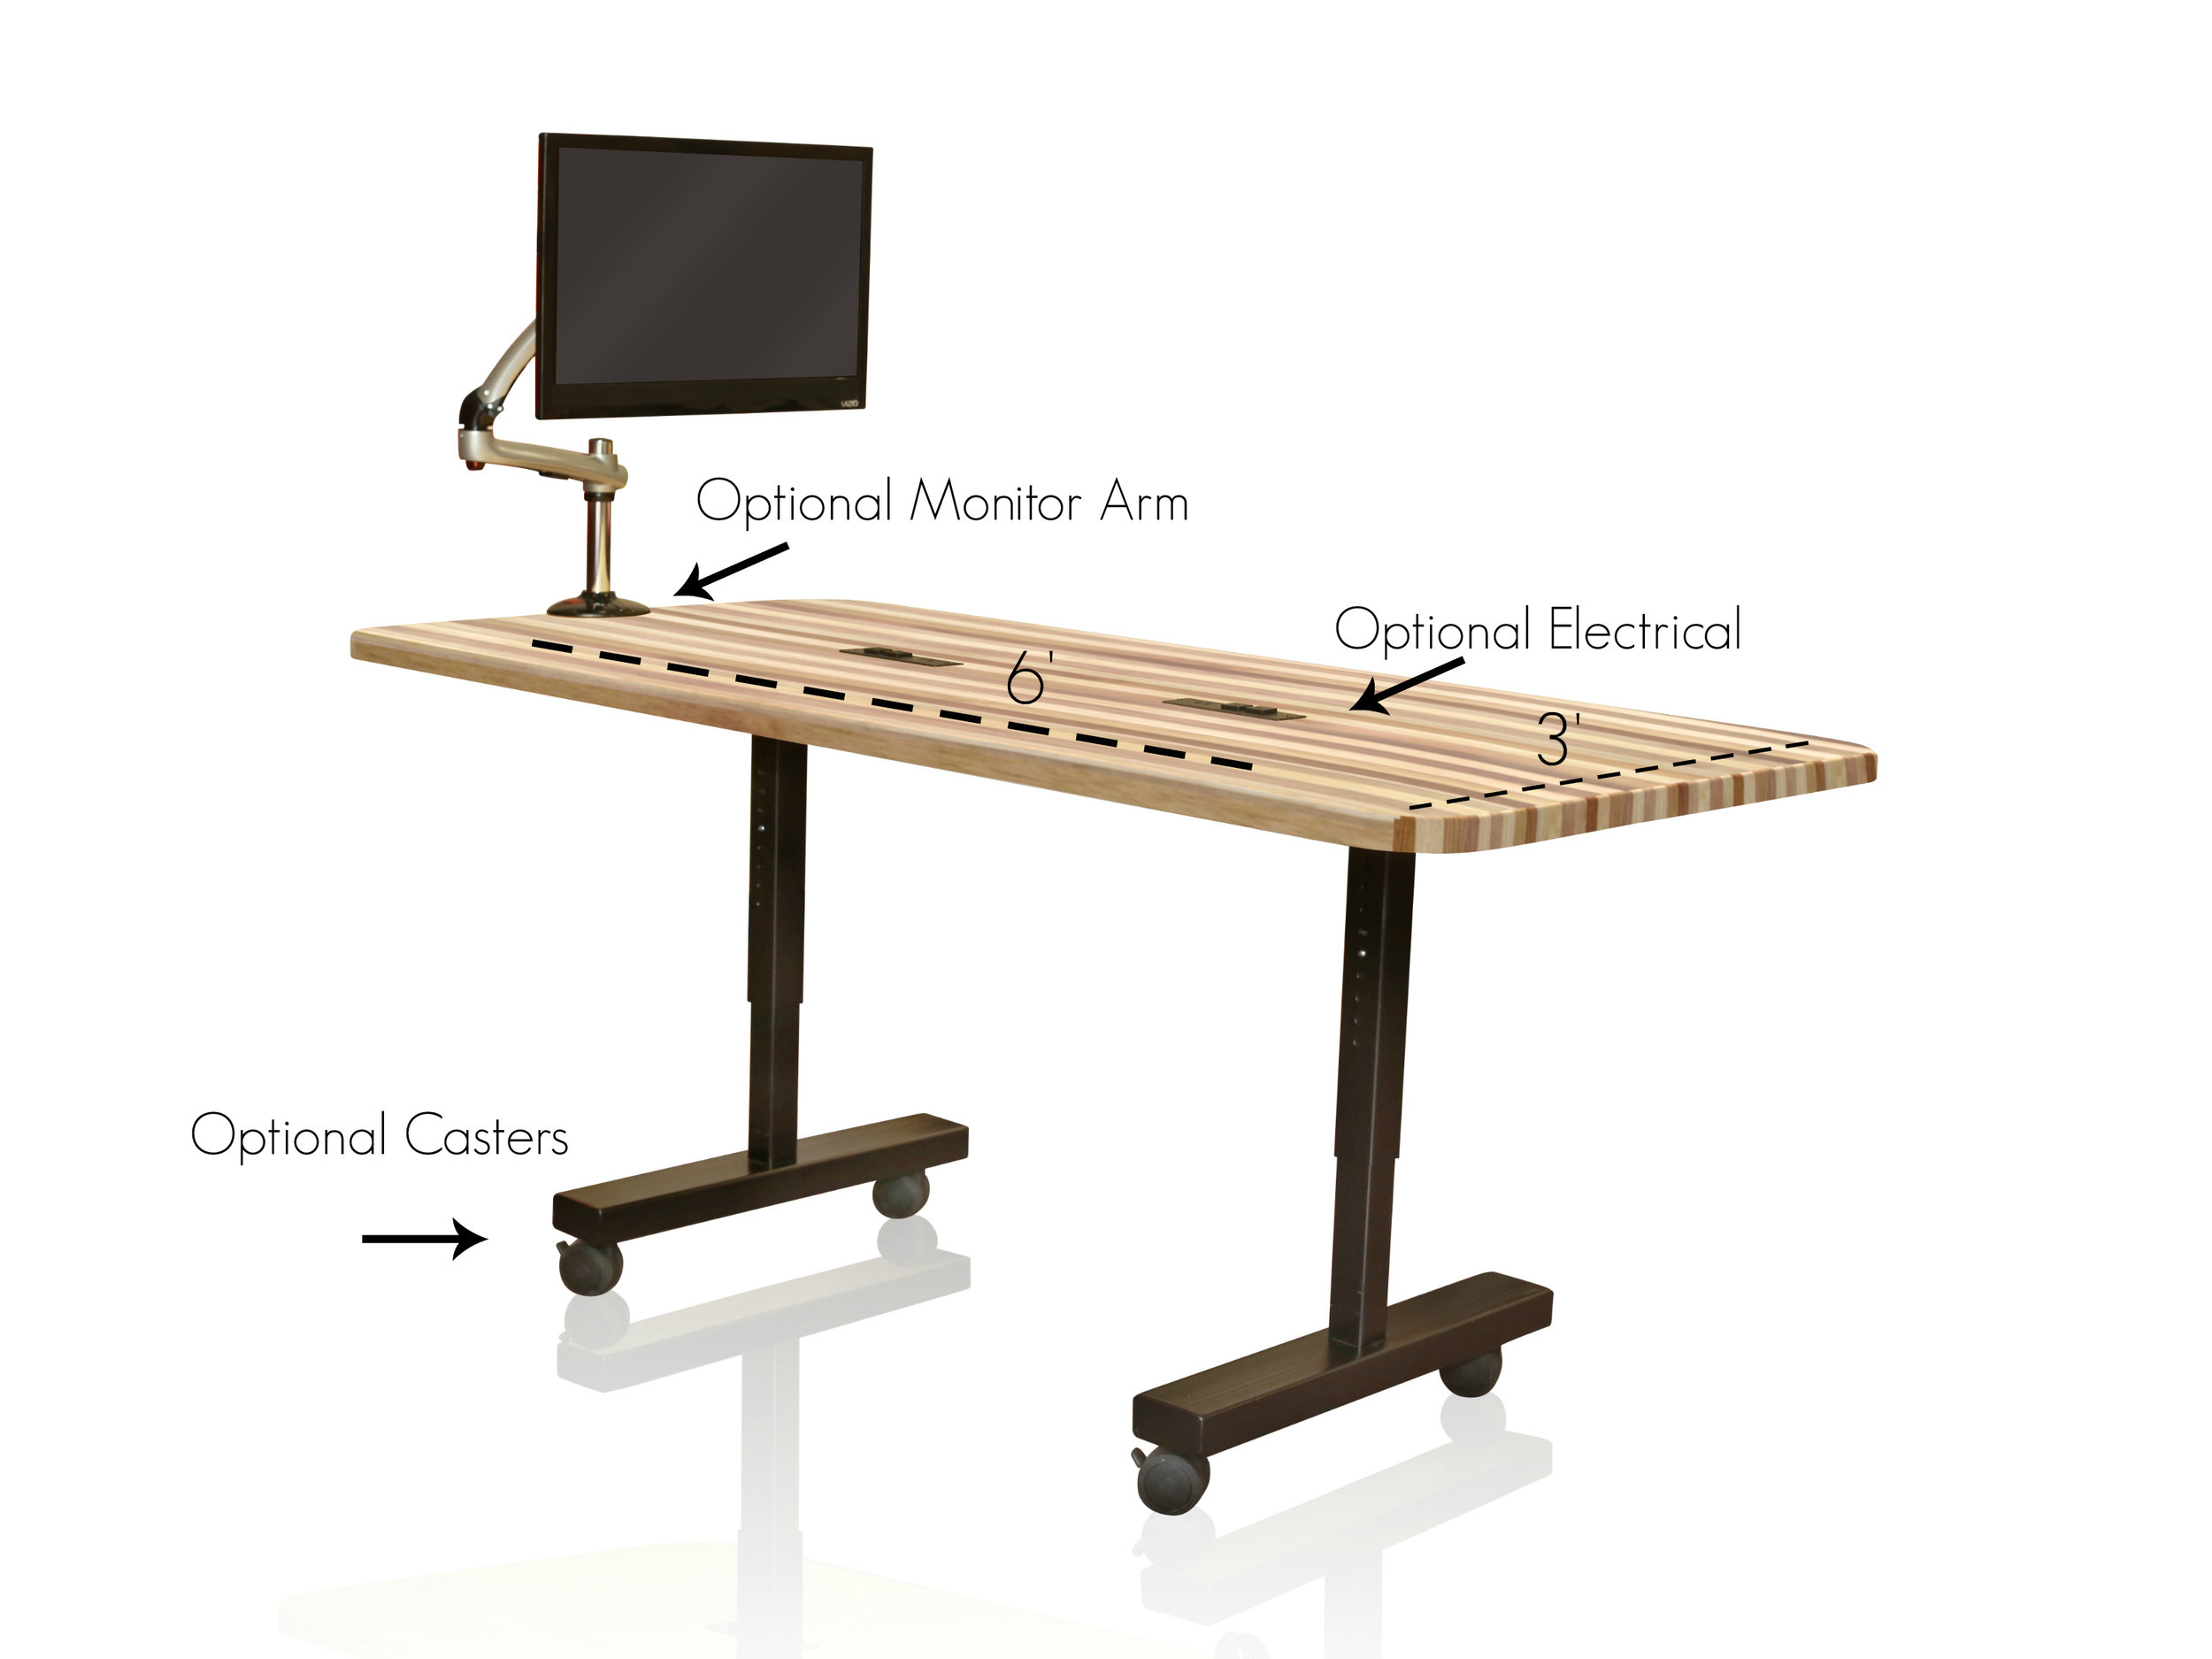 The Butcher Block Table - Our Butcher Block Table for makerspace environments allows students to design and build creative projects and empowers students to work together. By offering a hardy work surface, adjustable height legs for sitting or standing, optional power unit and monitor arm, the sky's the limit! Foster a creative environment and see where your students will go!